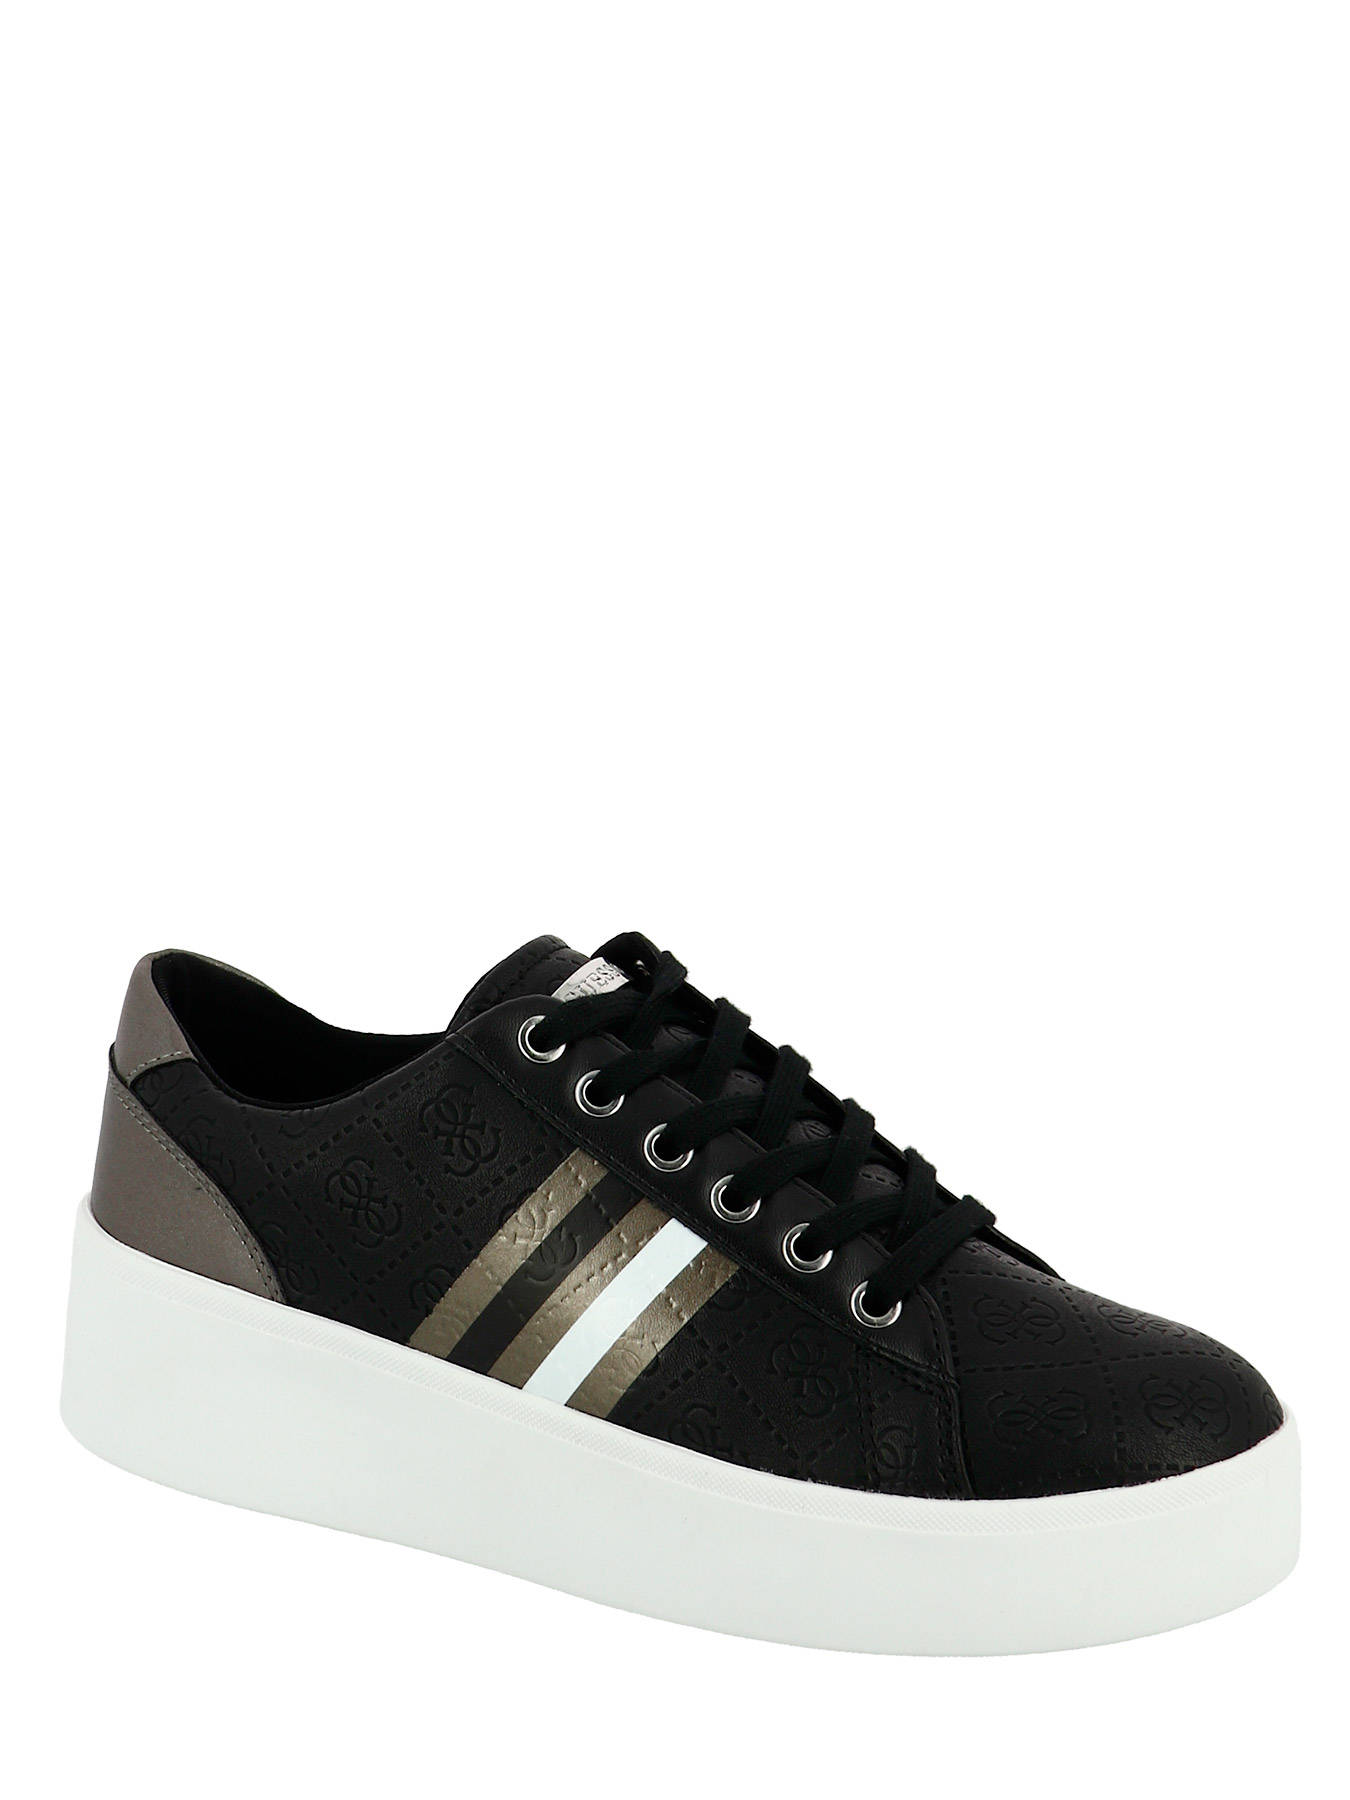 Guess Sneakers TALLI - best prices